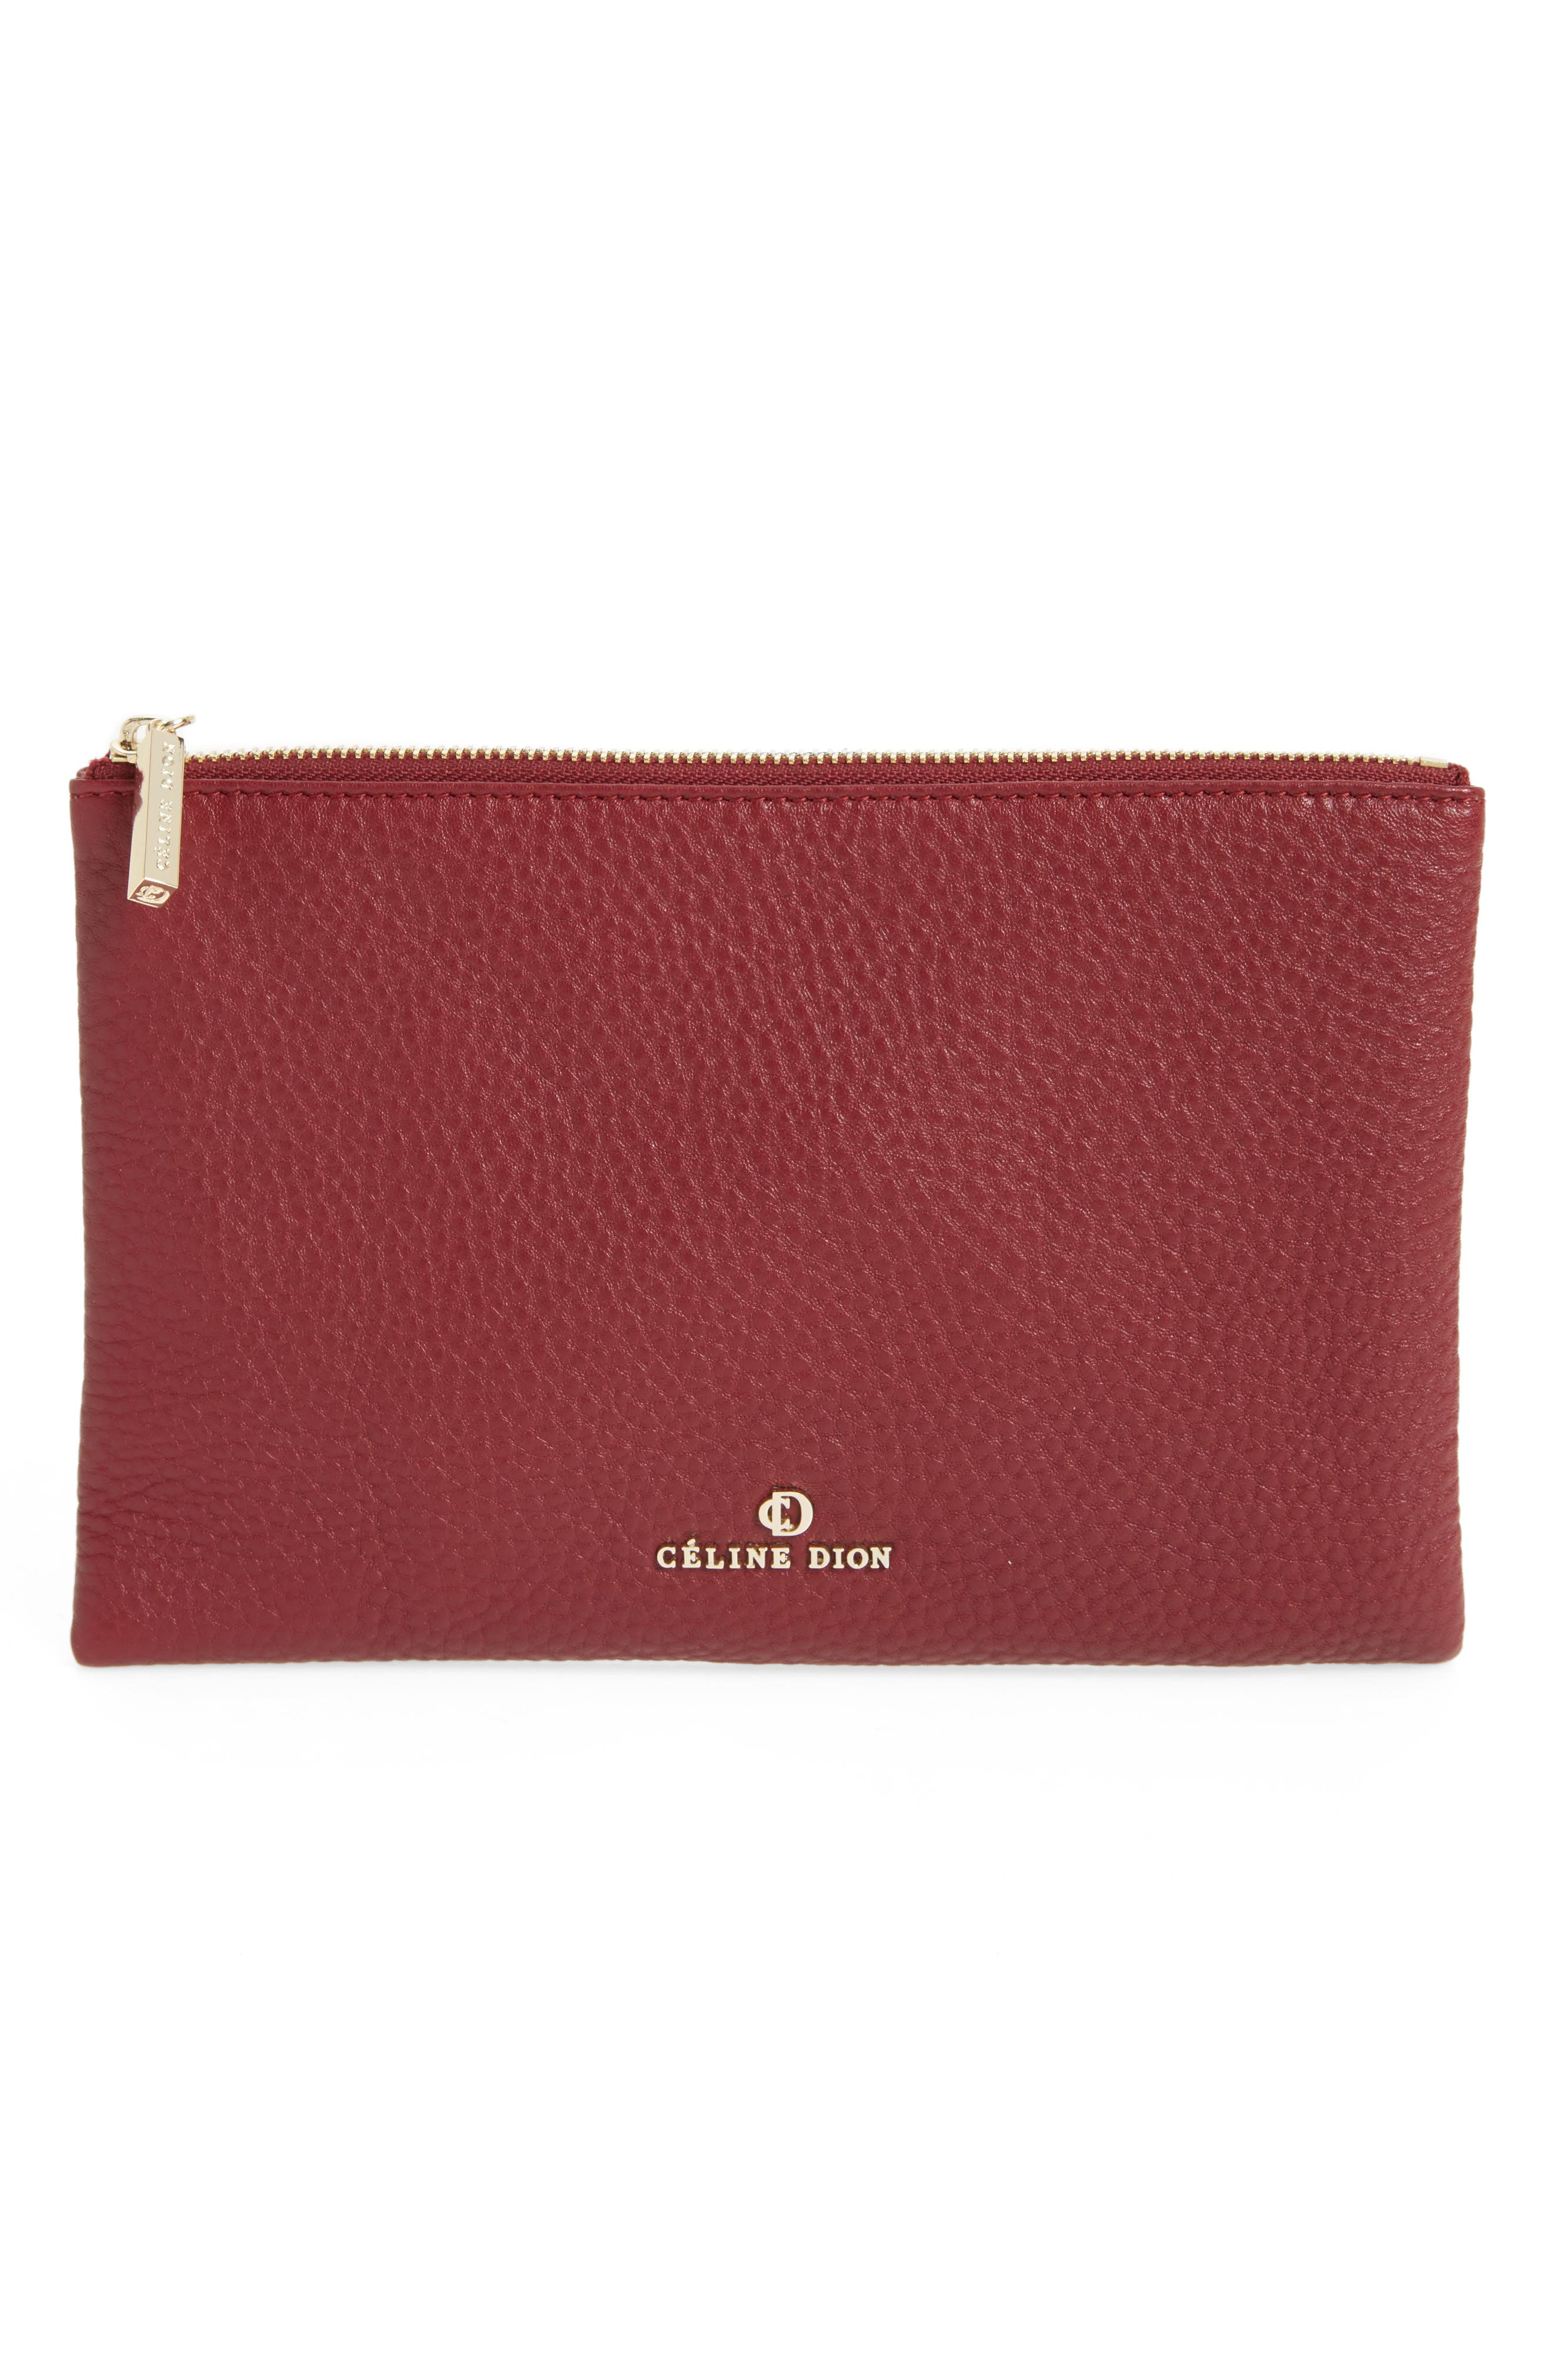 Céline Dion Adagio Leather Zip Pouch,                             Main thumbnail 1, color,                             Dark Red